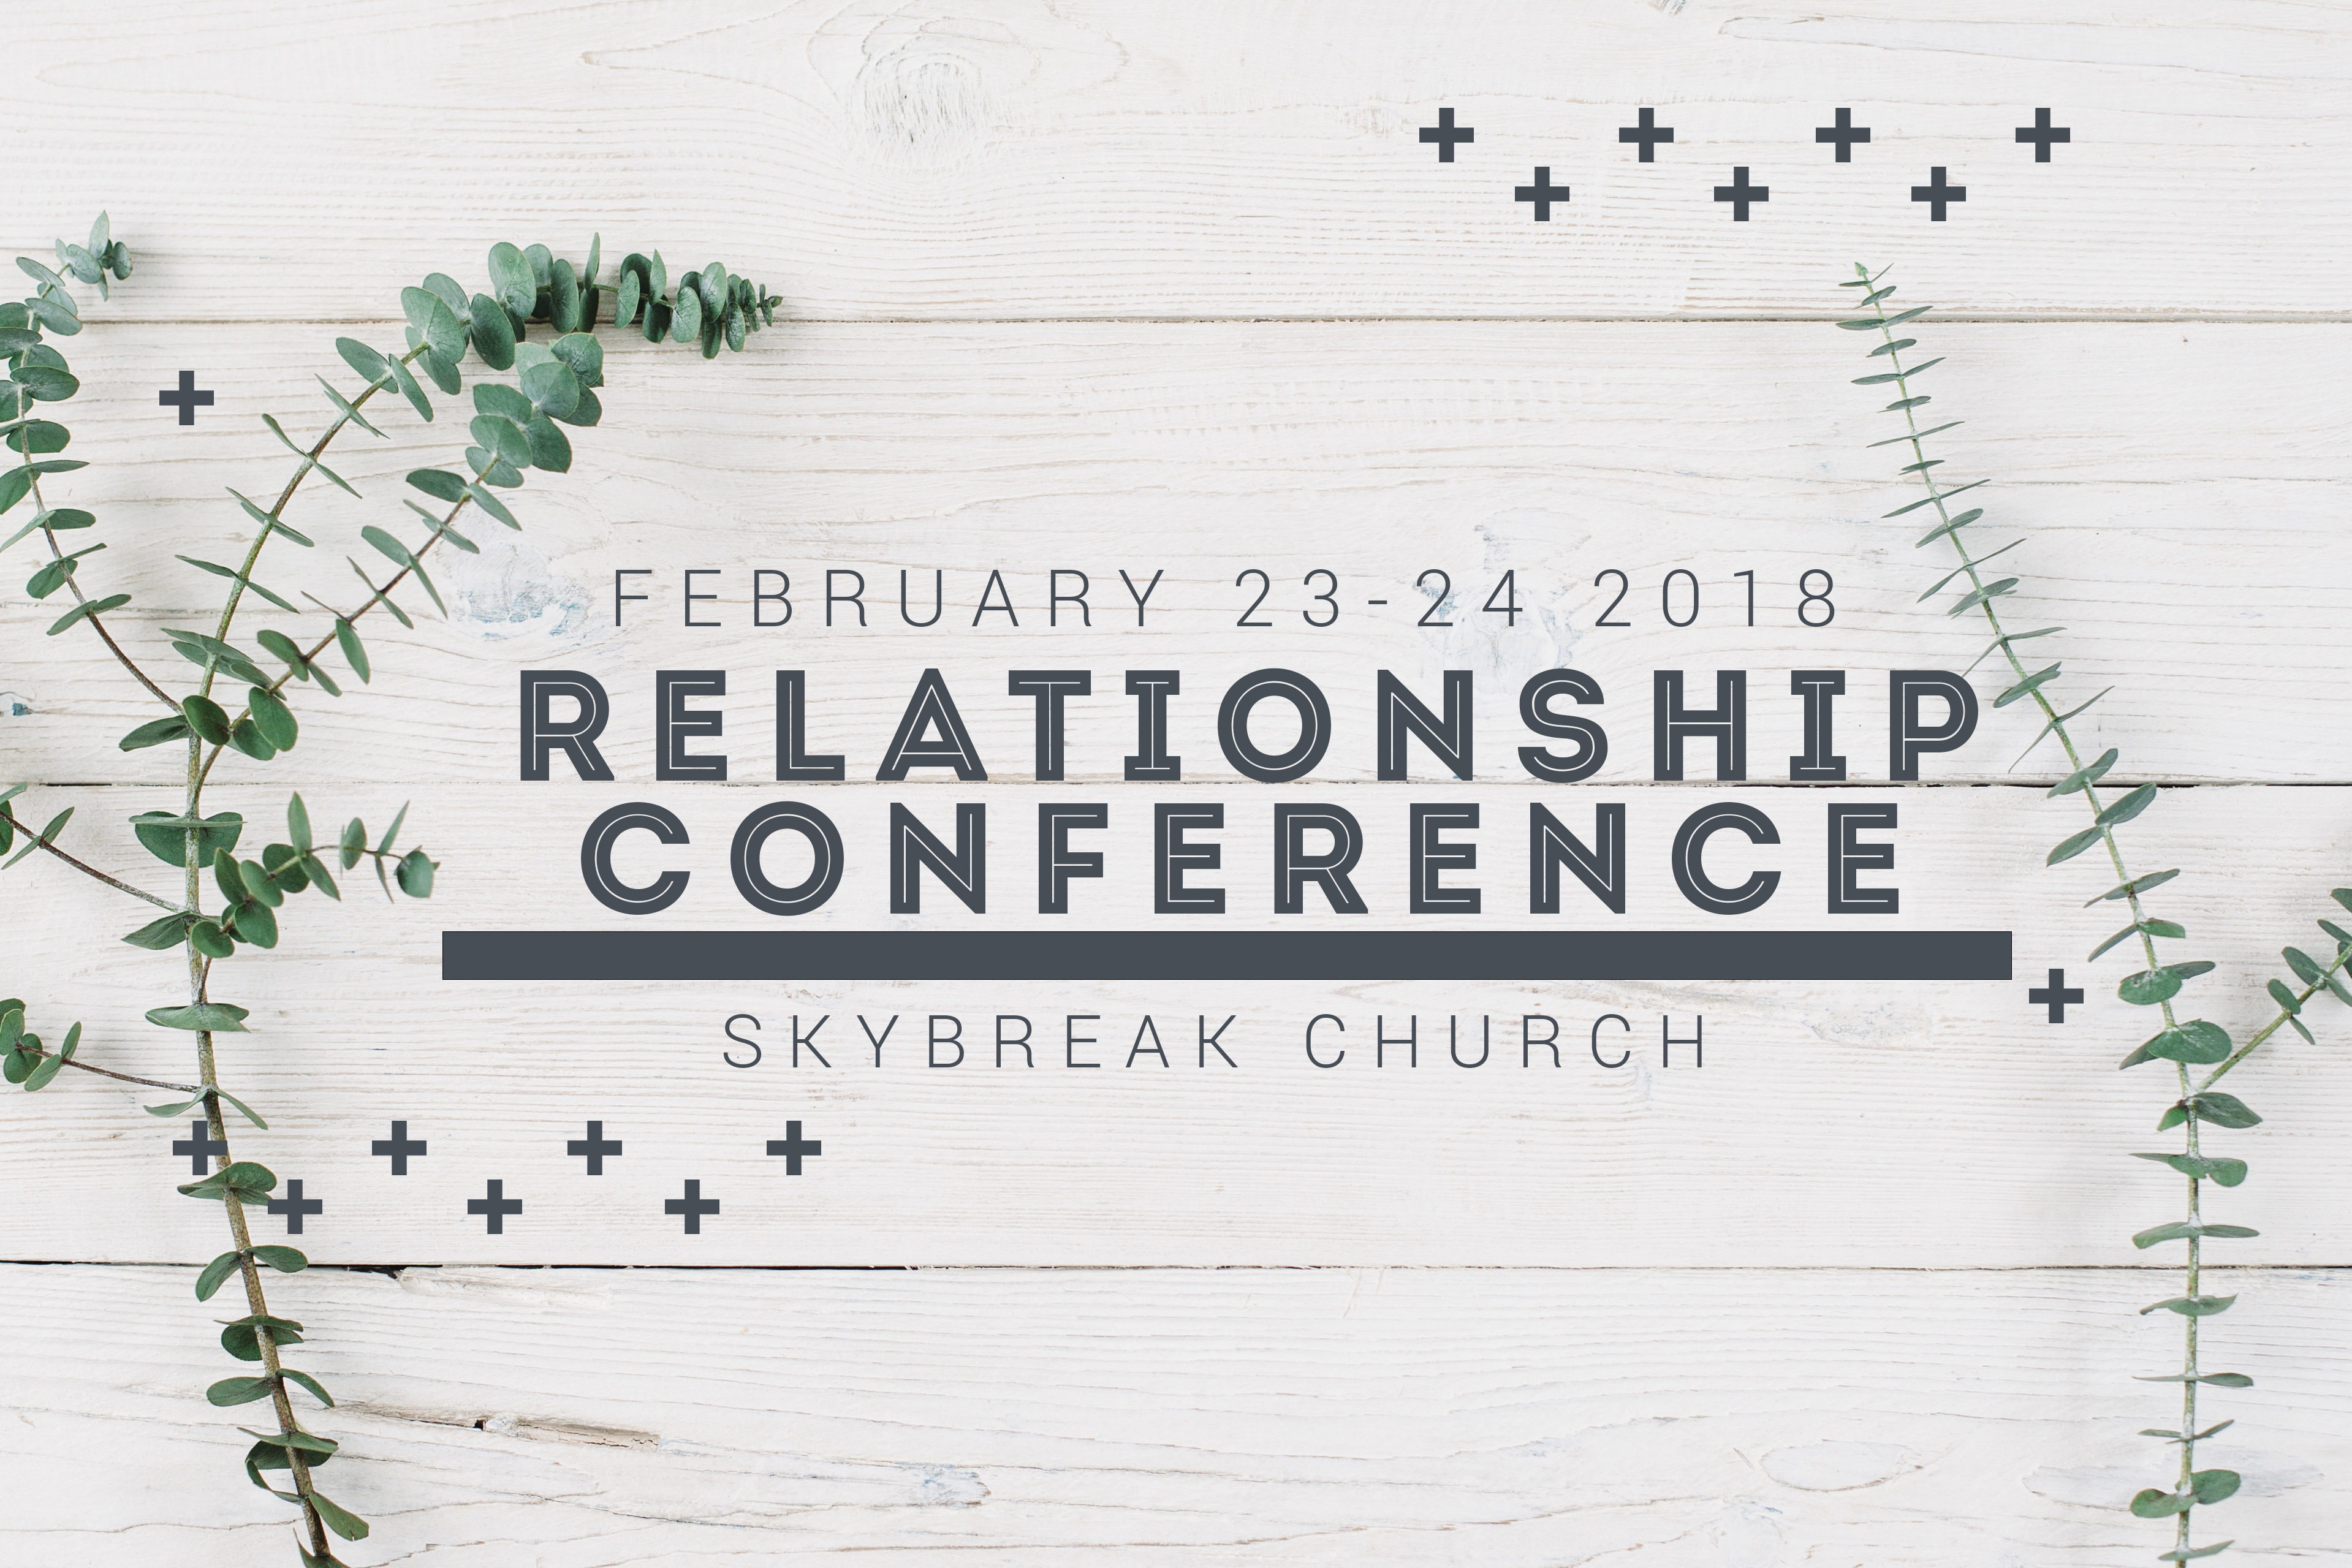 Relationship conference graphic